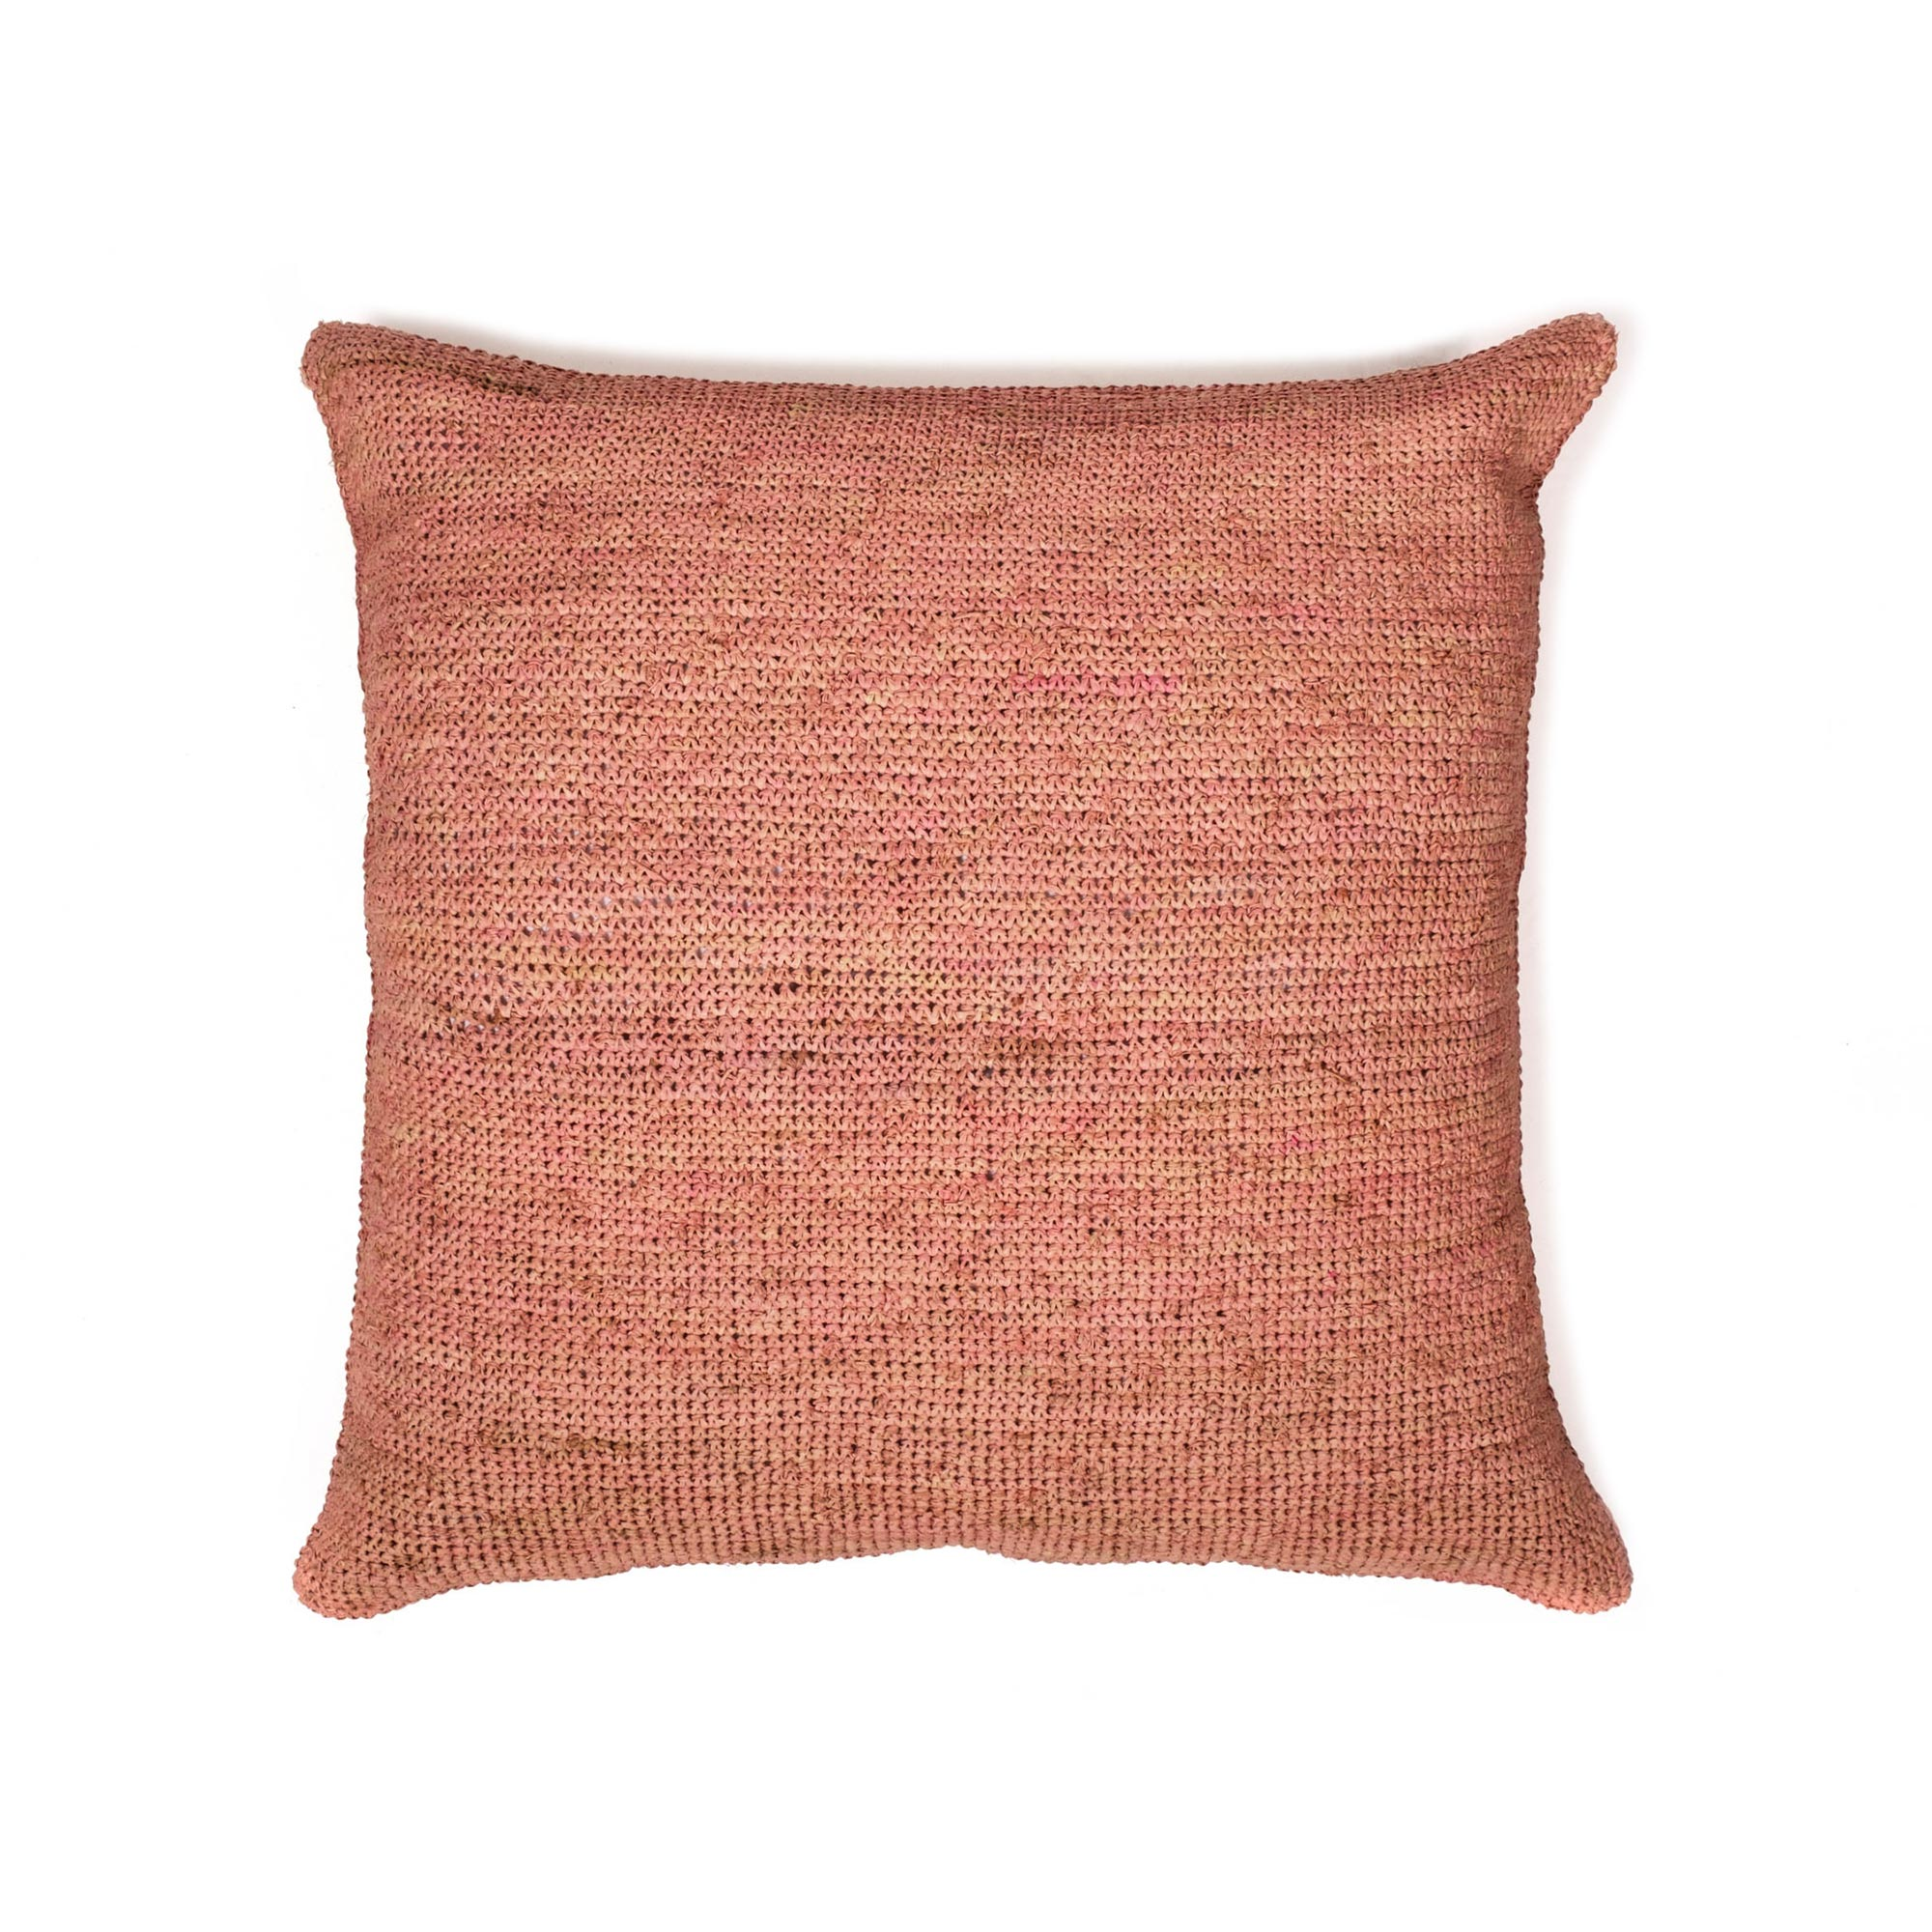 Raffia Pillow - Crochet - Blush